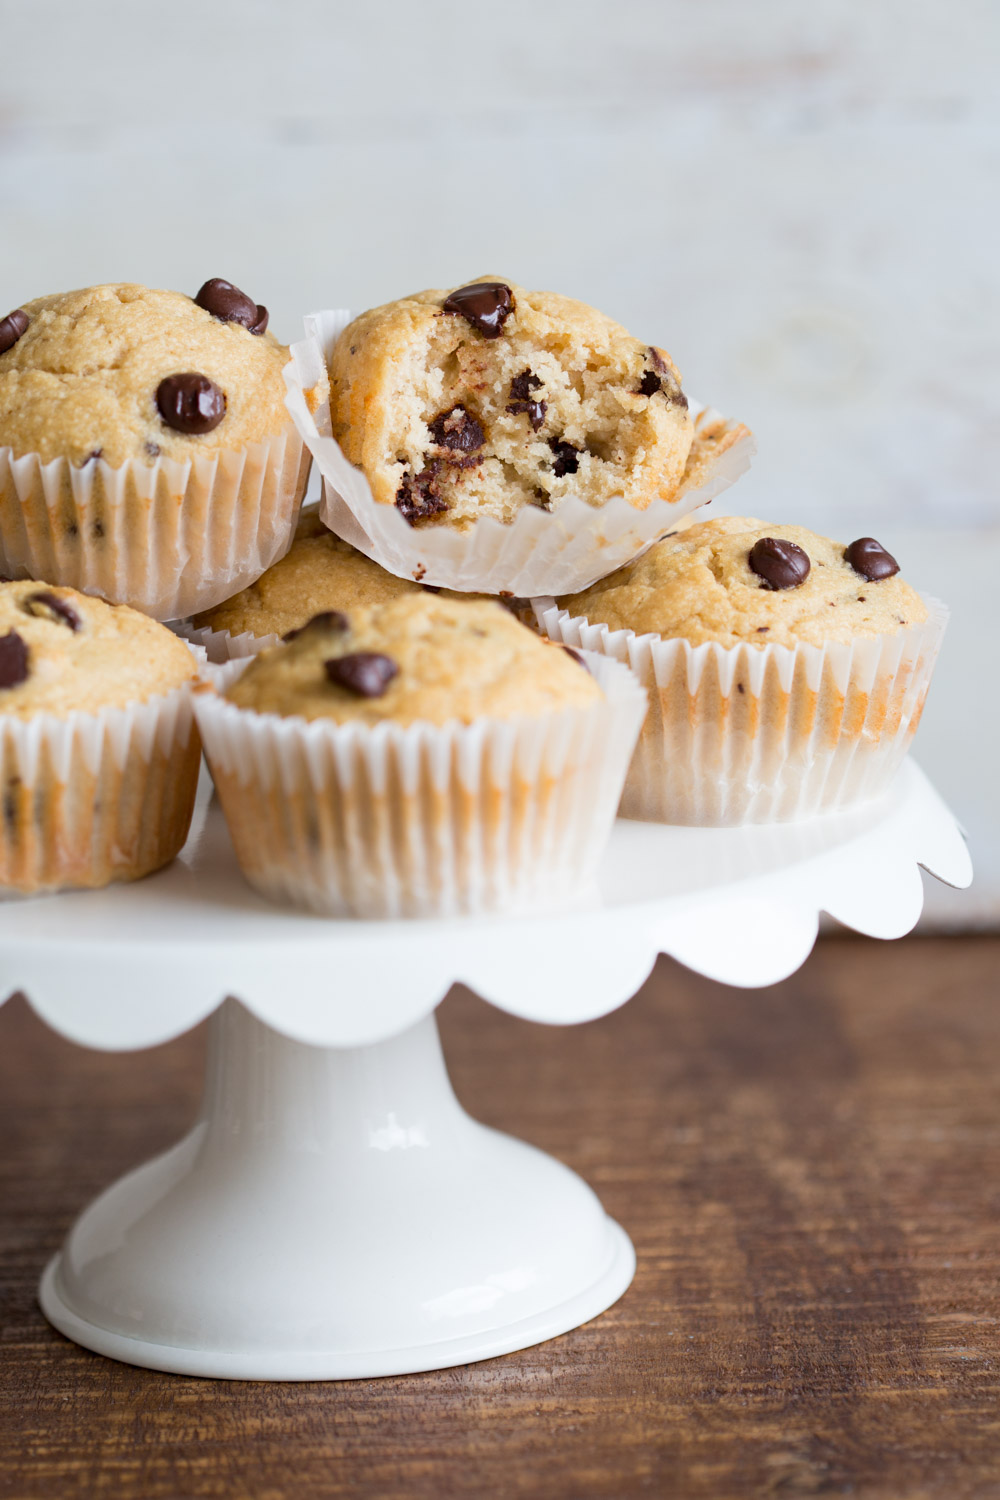 Chocolate chip muffins recipe using oil